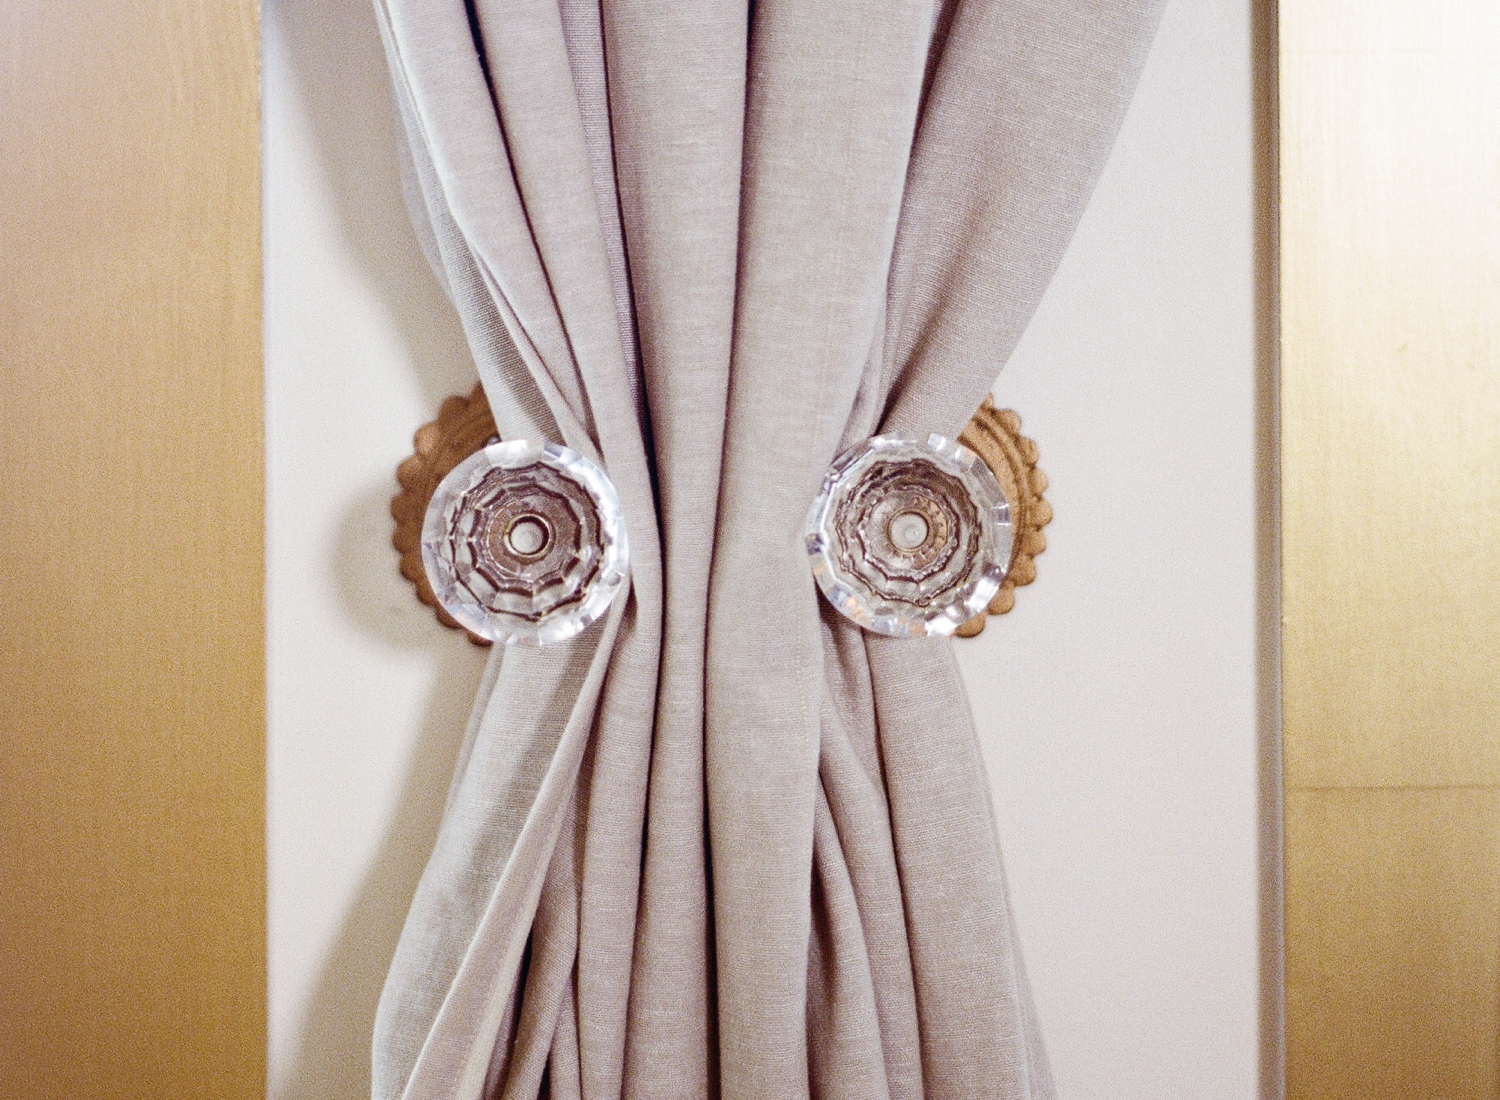 curtain tie backs, vintage door knobs